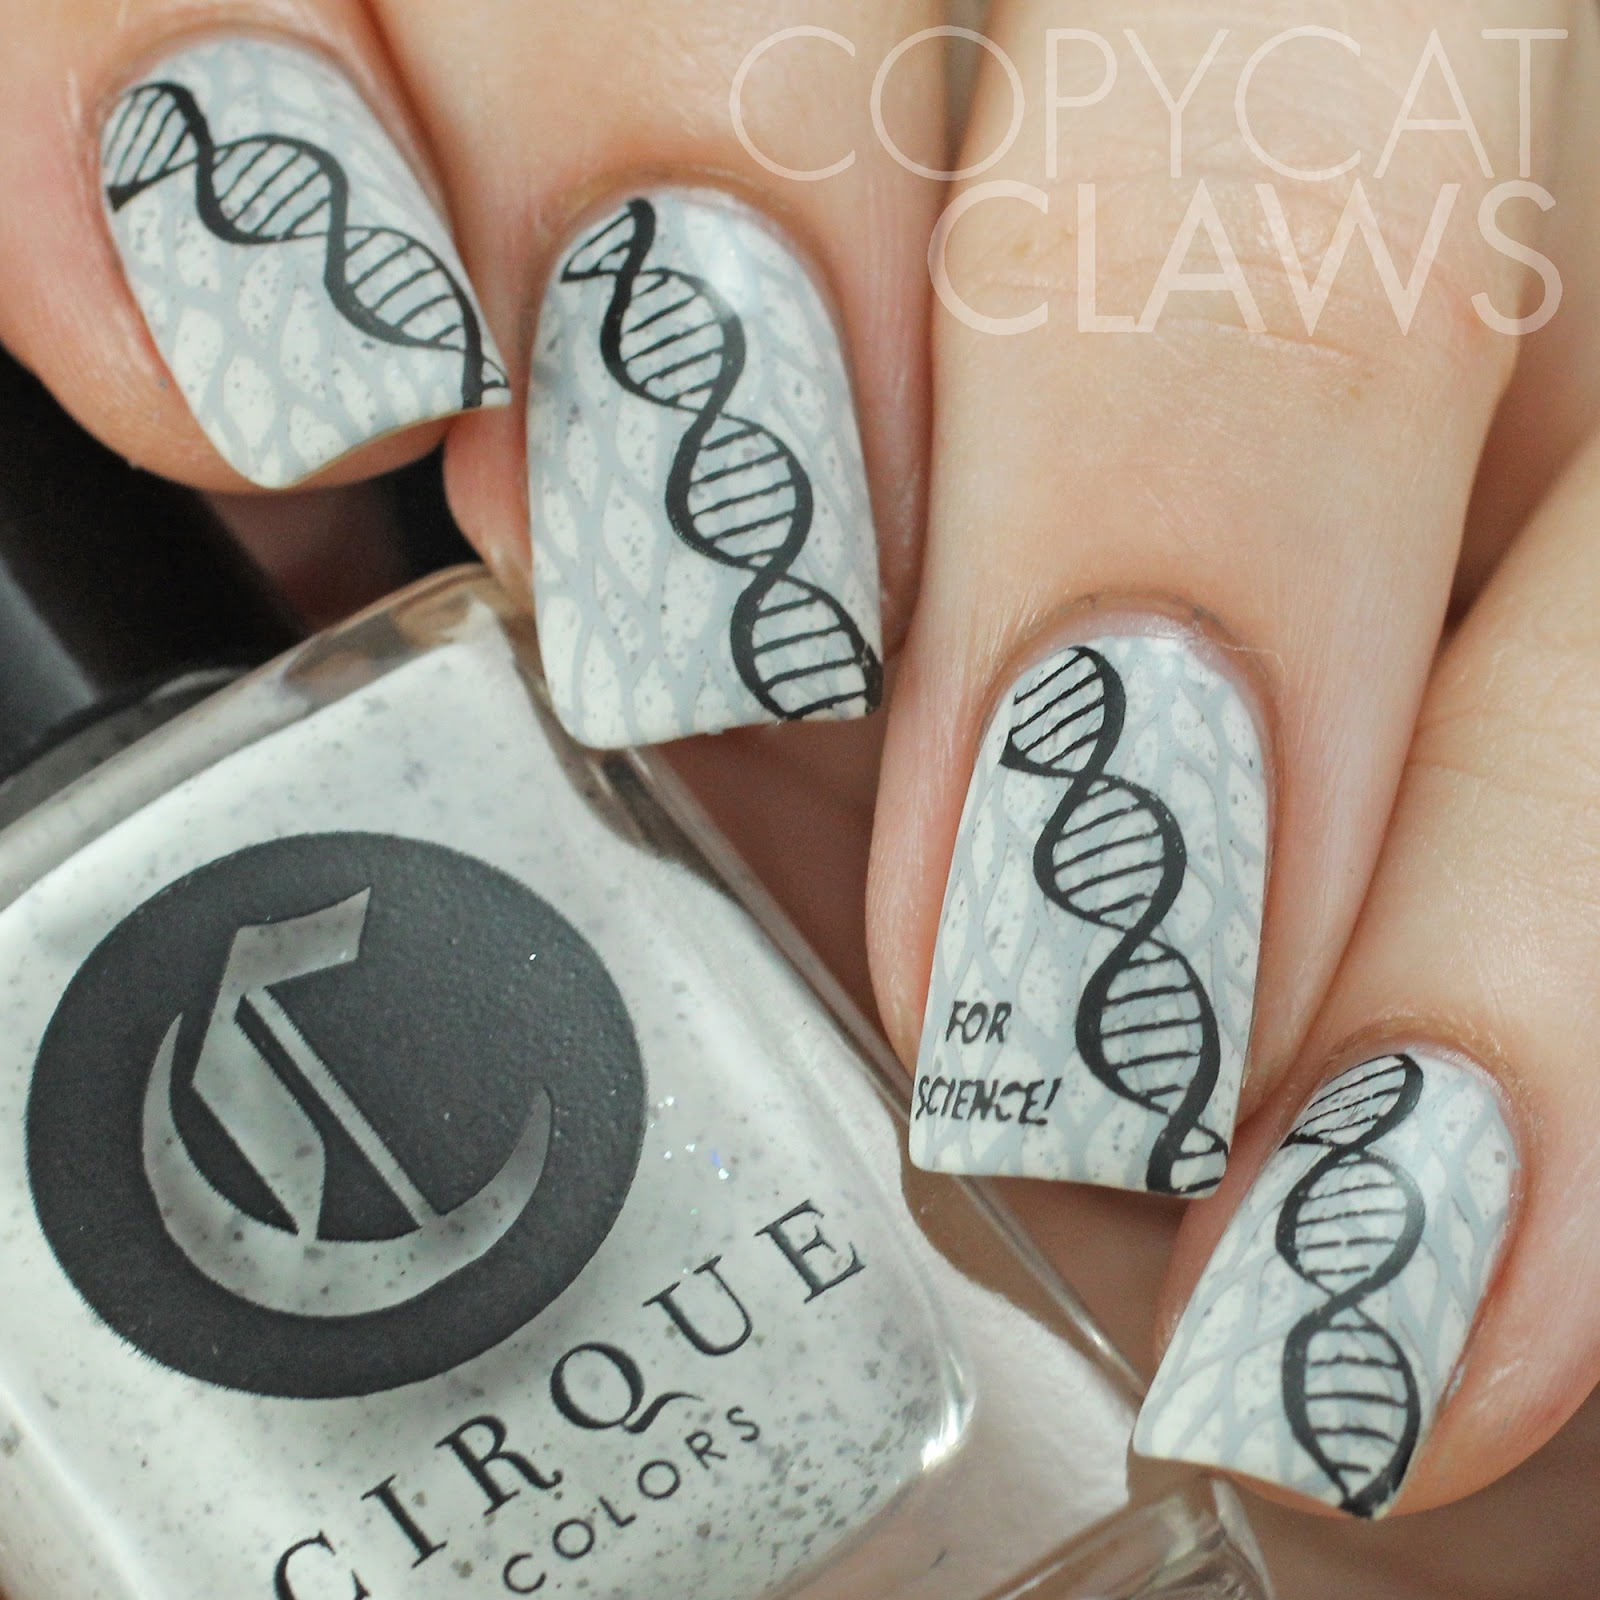 Science Nail Designs: Copycat Claws: 40 Great Nail Art Ideas